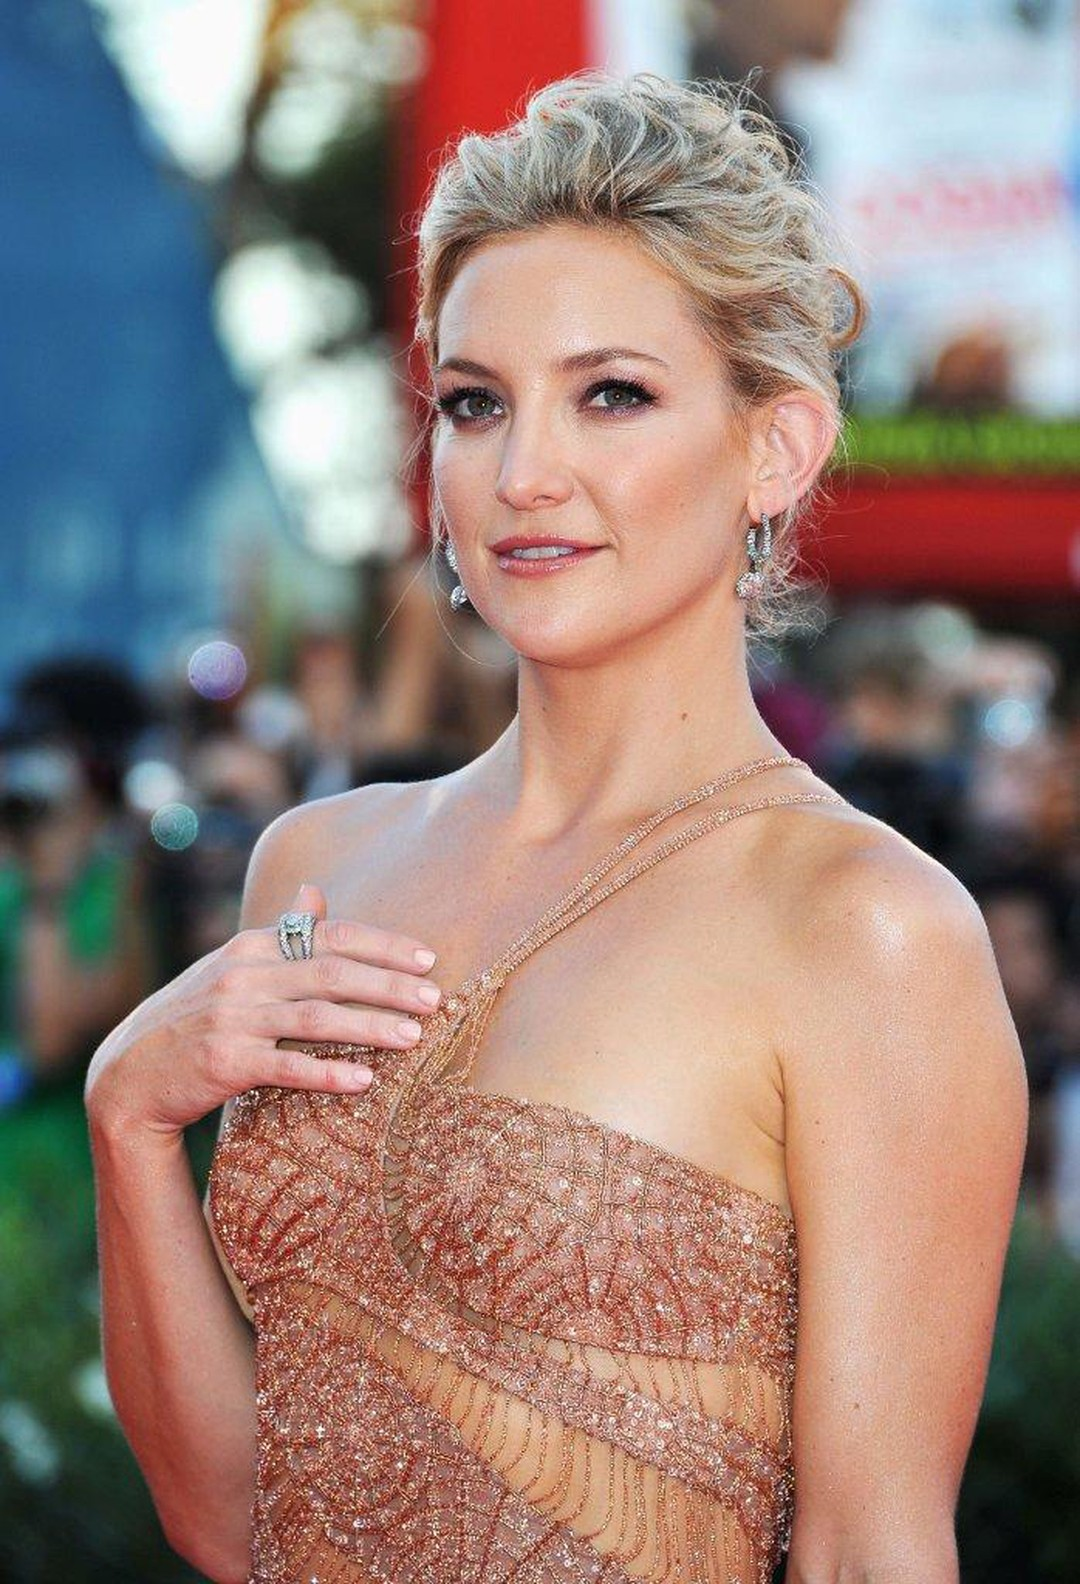 Faberge-Kate-Hudson-in-Faberge-at-Venice-Film-Festival-29.08.12-03